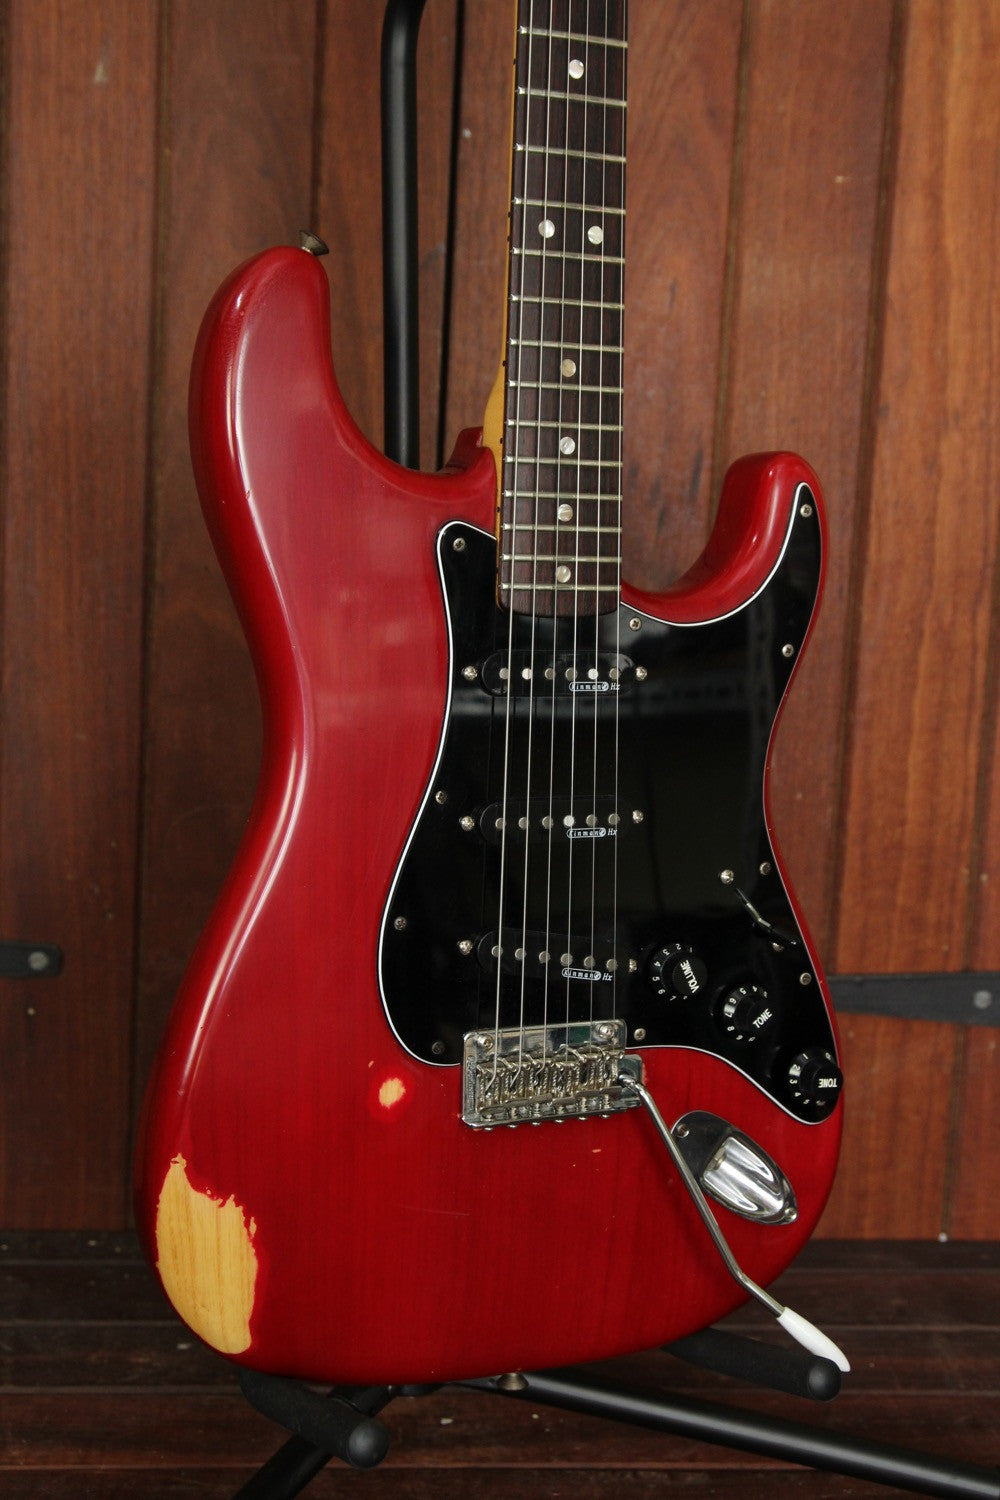 Fender 1979 Stratocaster Red Vintage Electric - The Rock Inn